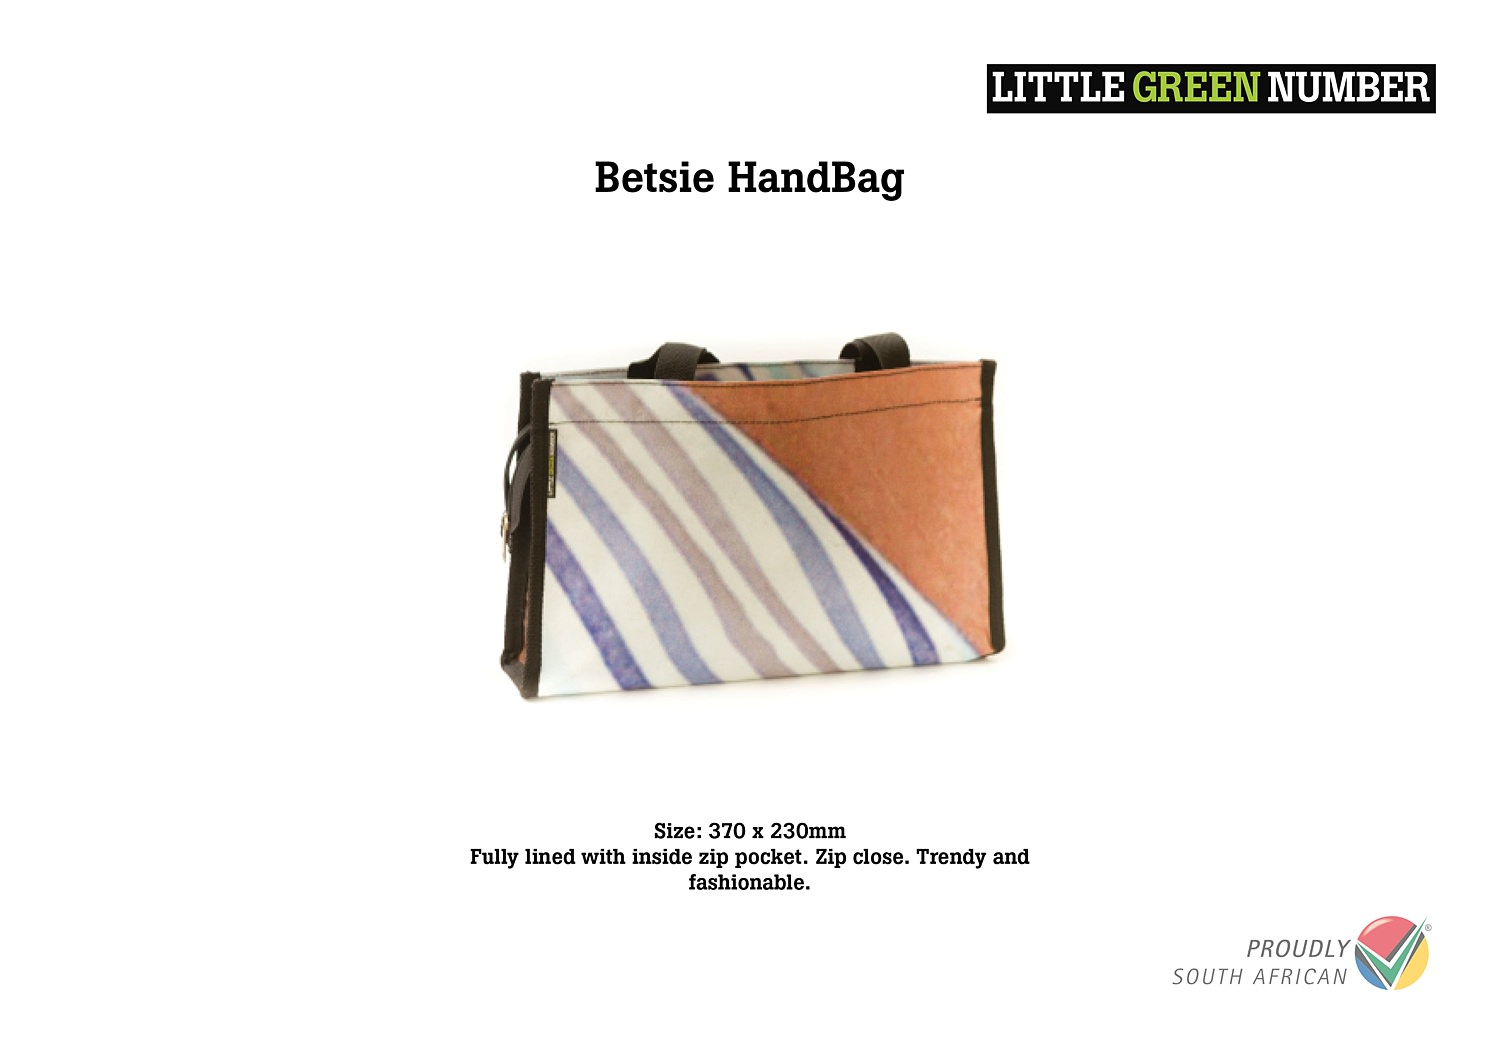 Little Green Number Catalogue Buy1give1 upcycling billboards gauteng14.jpg